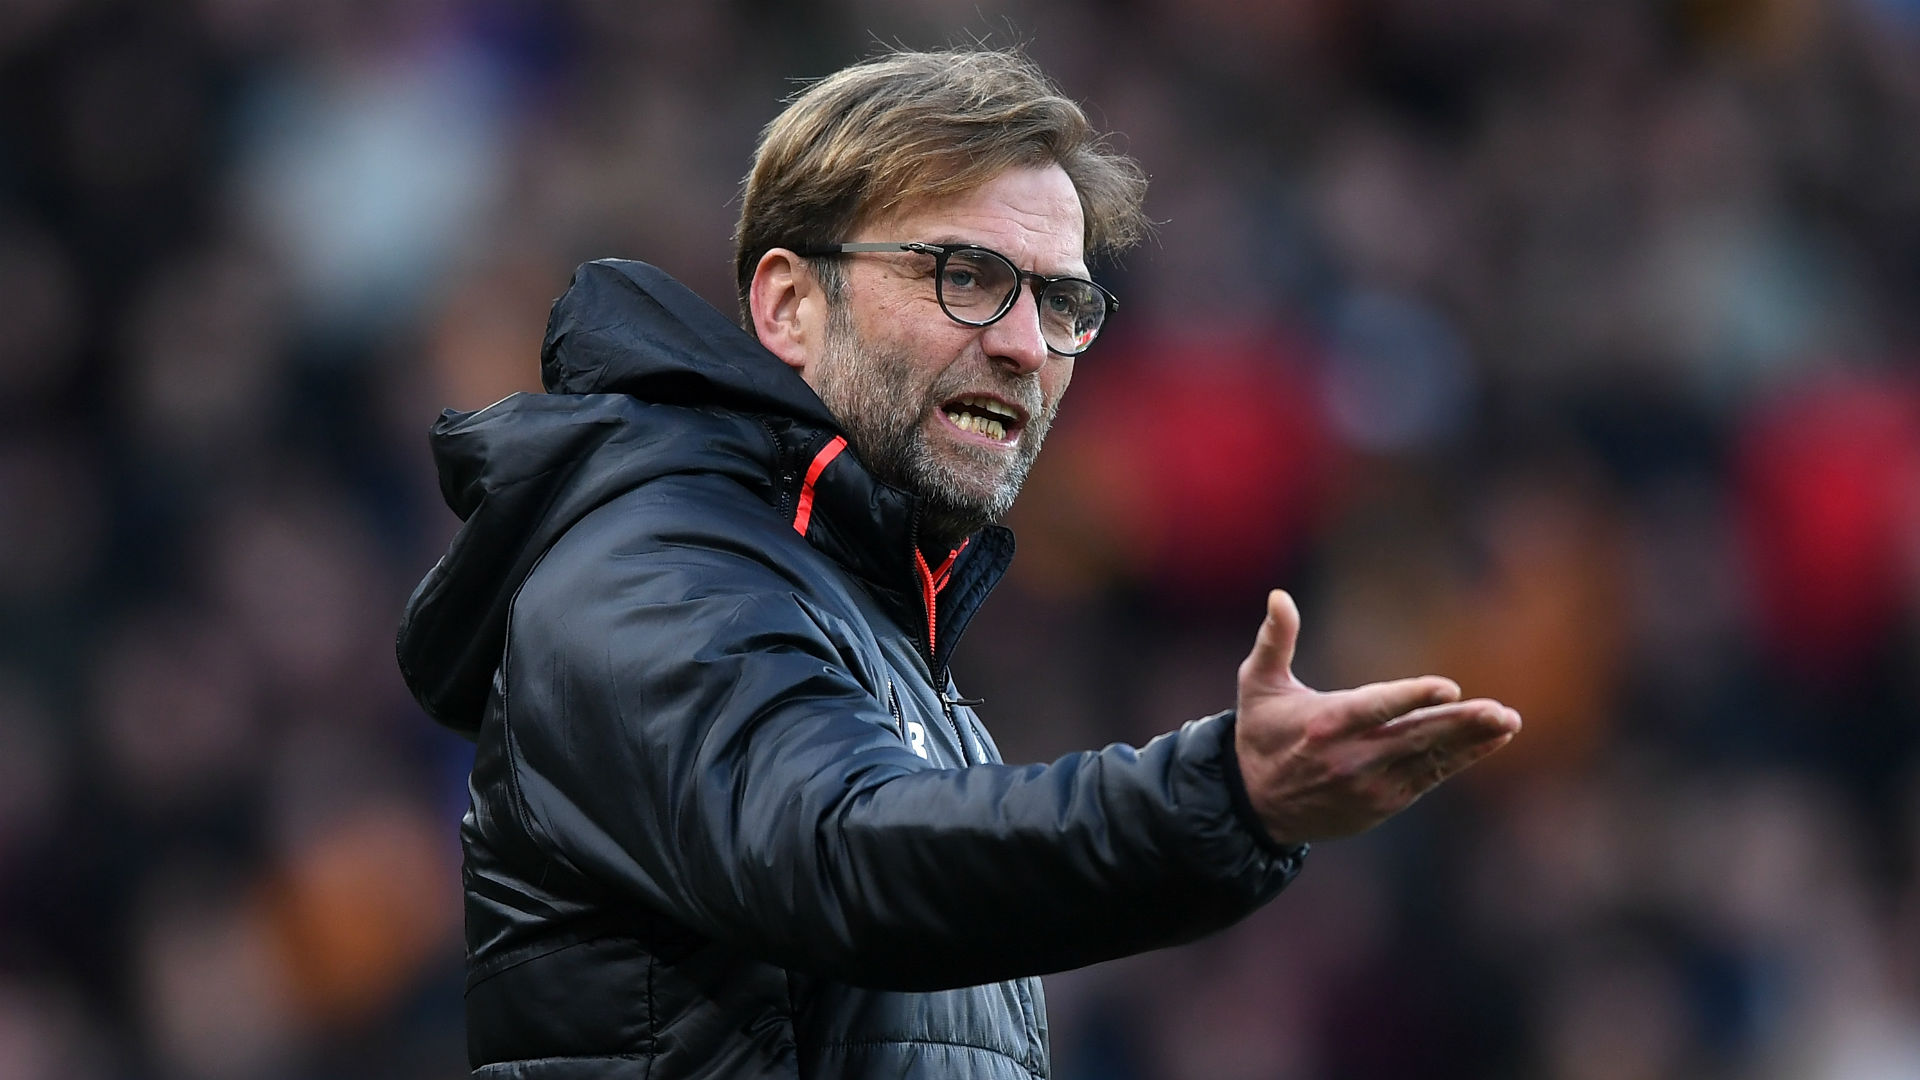 Jurgen Klopp Premier League Hull v Liverpool